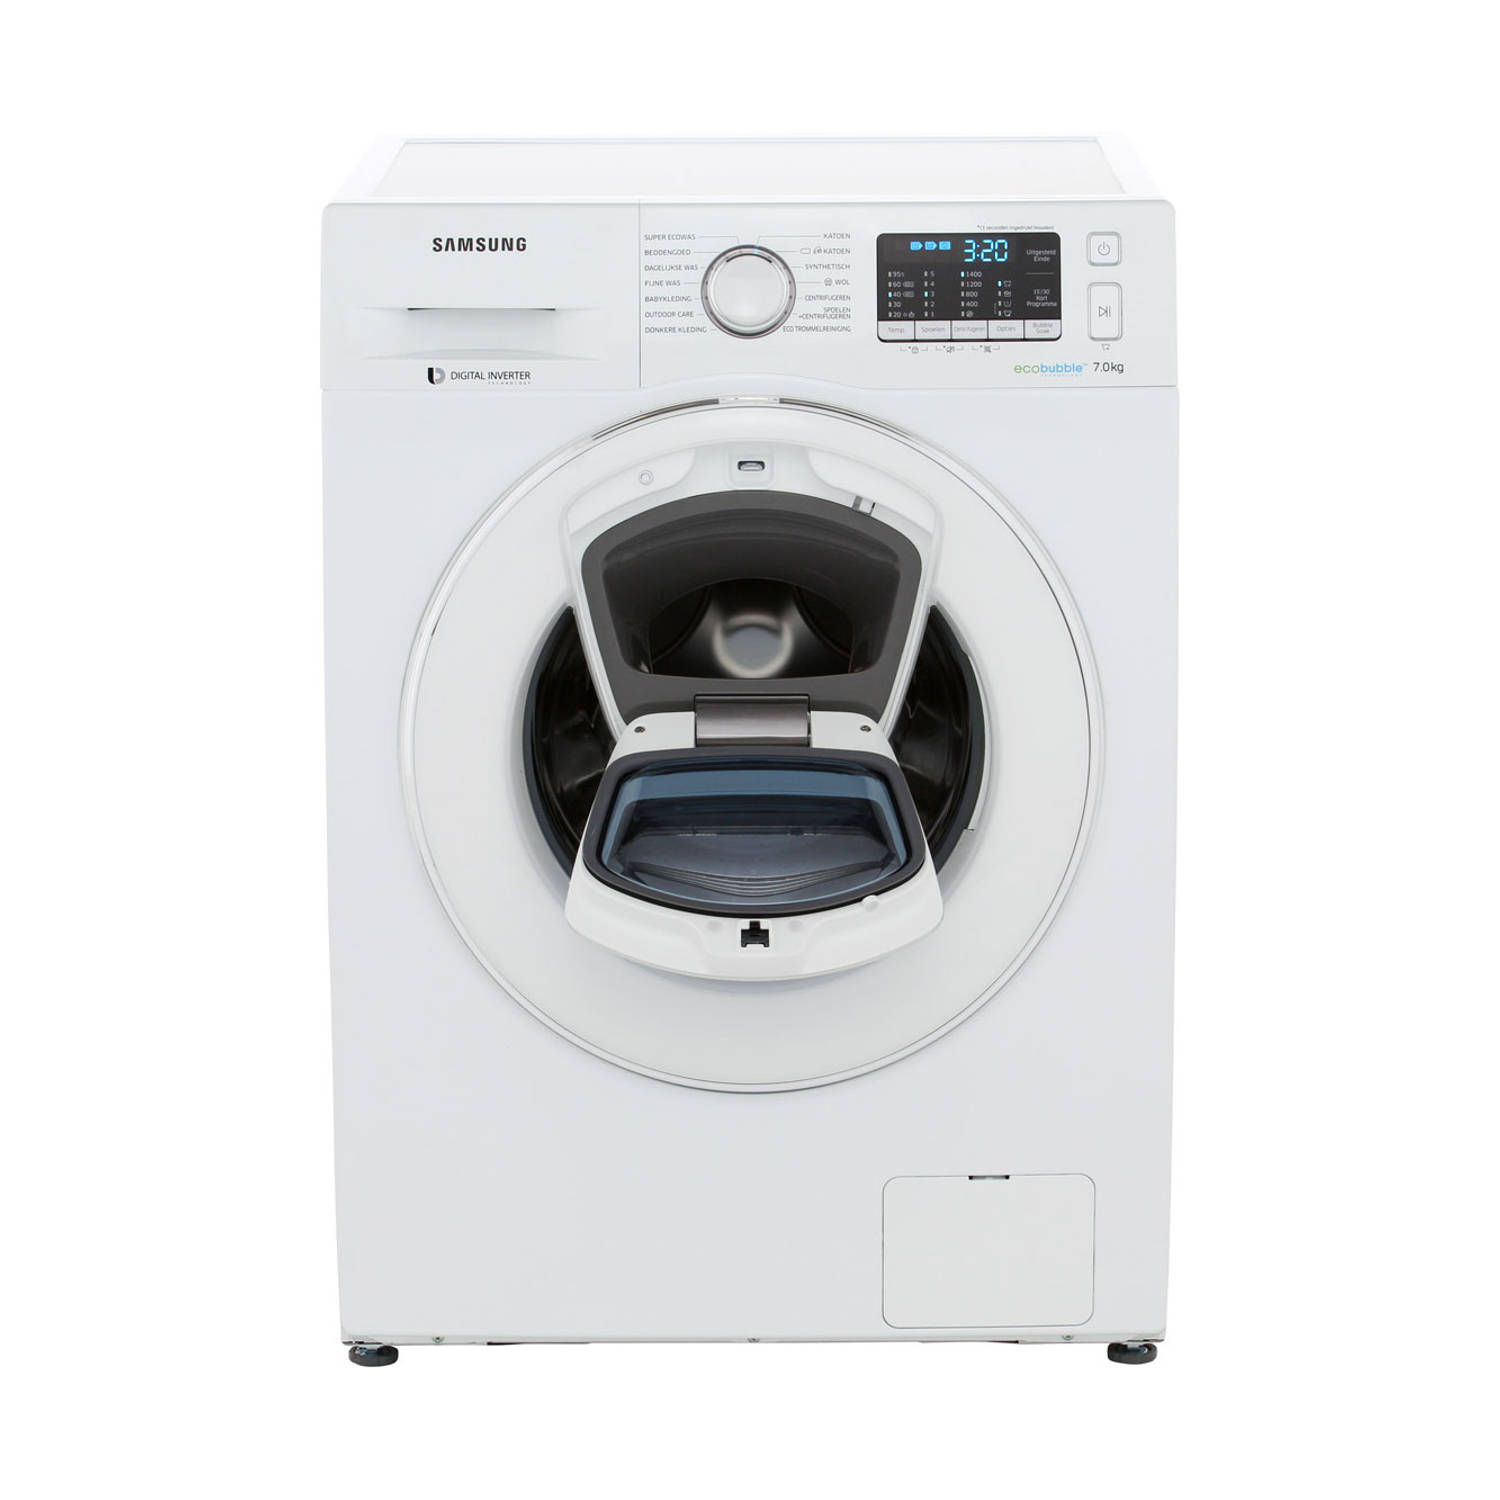 Samsung AddWash 5500 WW70K5400WW/EN wasmachines - Wit